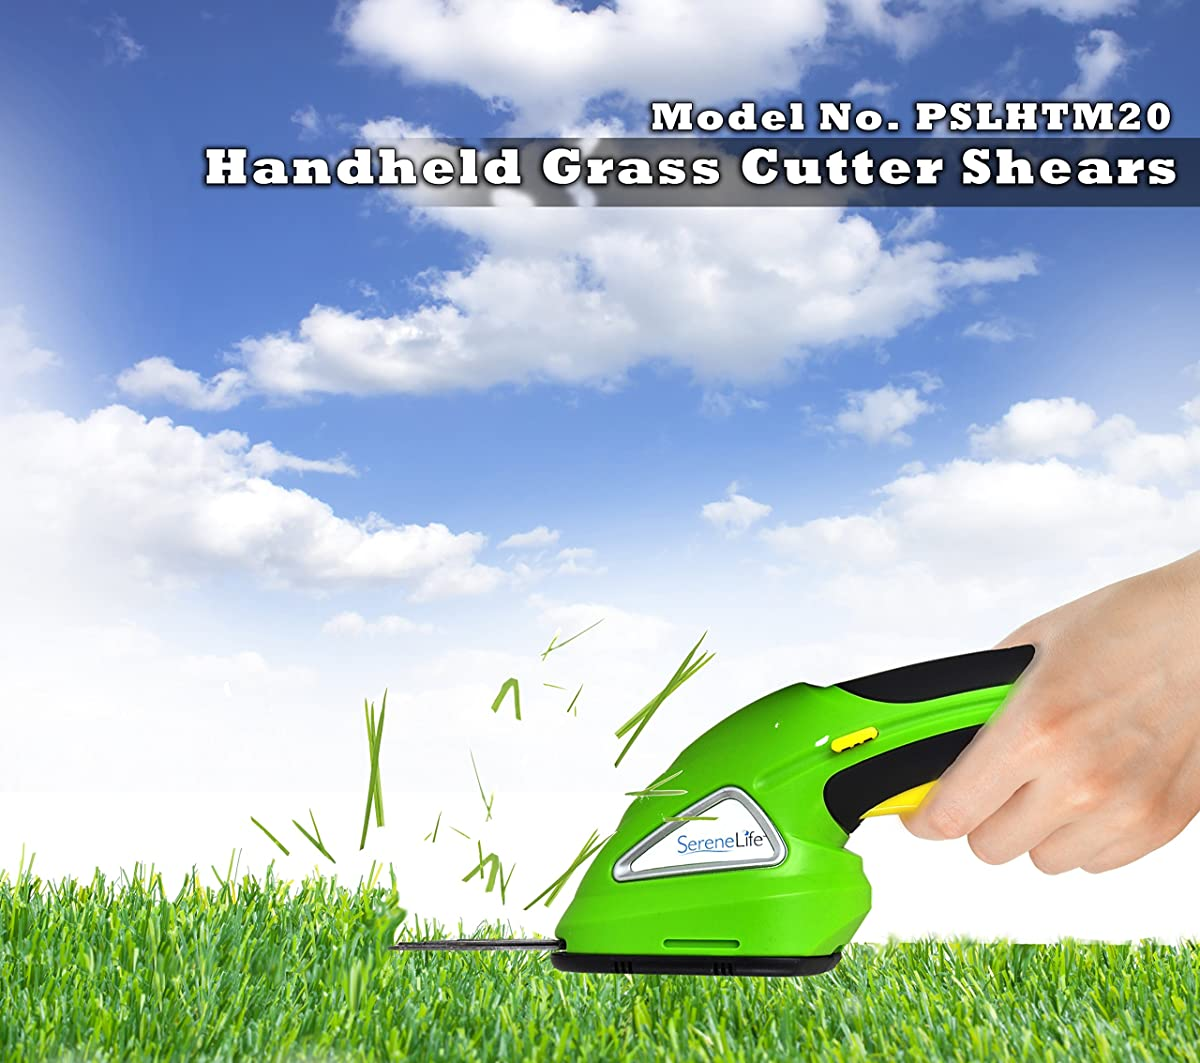 SereneLife Battery Grass Cutter, Grass Clippers Cordless, Trimmer Cutter, Handheld Trimmer, Grass Shear Electric,Perfect For Leaves & Debris, Rechargeable Battery, Charge Time 4 Hrs, 3.6V (PSLHTM20)